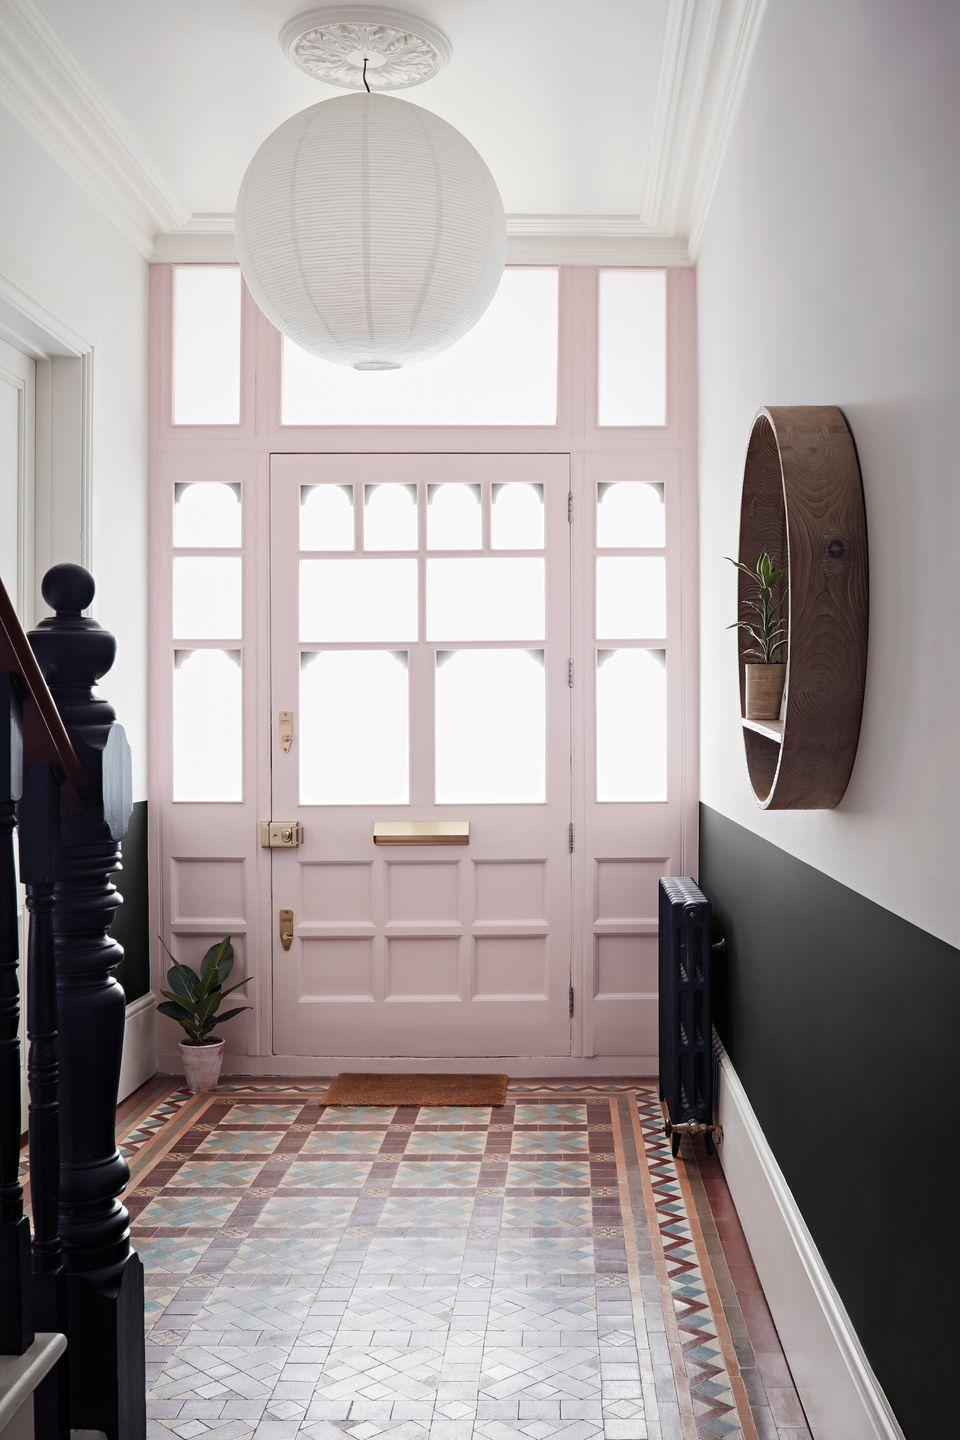 """<p>Painting a front door is an inexpensive way to freshen up the exterior of your home. Need some inspiration? Blue and grey are among the most <a href=""""https://www.housebeautiful.com/uk/decorate/exterior/a35127582/popular-door-colours-instagram/"""" rel=""""nofollow noopener"""" target=""""_blank"""" data-ylk=""""slk:Instagrammable shades for 2021"""" class=""""link rapid-noclick-resp"""">Instagrammable shades for 2021</a>, while a previous study found <a href=""""https://www.housebeautiful.com/uk/lifestyle/property/a32795739/front-door-colour-boost-house-value/"""" rel=""""nofollow noopener"""" target=""""_blank"""" data-ylk=""""slk:bright blue"""" class=""""link rapid-noclick-resp"""">bright blue</a> doors could boost your property value by £4,000.</p><p>'Statement doors have become very popular recently, with people opting for a bright blue, a vibrant yellow or soft pastel shades,' says Matthew Brown, <a href=""""https://www.sandtex.co.uk/"""" rel=""""nofollow noopener"""" target=""""_blank"""" data-ylk=""""slk:Sandtex"""" class=""""link rapid-noclick-resp"""">Sandtex</a> Technical Consultant. 'These colours can really make your property stand out and give it a more modern feel.'</p><p>Pictured: Crown Breatheasy Creme de la Rose, £22 at <a href=""""https://go.redirectingat.com?id=127X1599956&url=https%3A%2F%2Fwww.homebase.co.uk%2Fcrown-breatheasy-creme-de-la-rose-matt-standard-emulsion-paint-5l%2F12809689.html&sref=https%3A%2F%2Fwww.housebeautiful.com%2Fuk%2Fdecorate%2Fhallway%2Fg36617179%2Finstagrammable-hallway-ideas%2F"""" rel=""""nofollow noopener"""" target=""""_blank"""" data-ylk=""""slk:Homebase"""" class=""""link rapid-noclick-resp"""">Homebase</a></p>"""